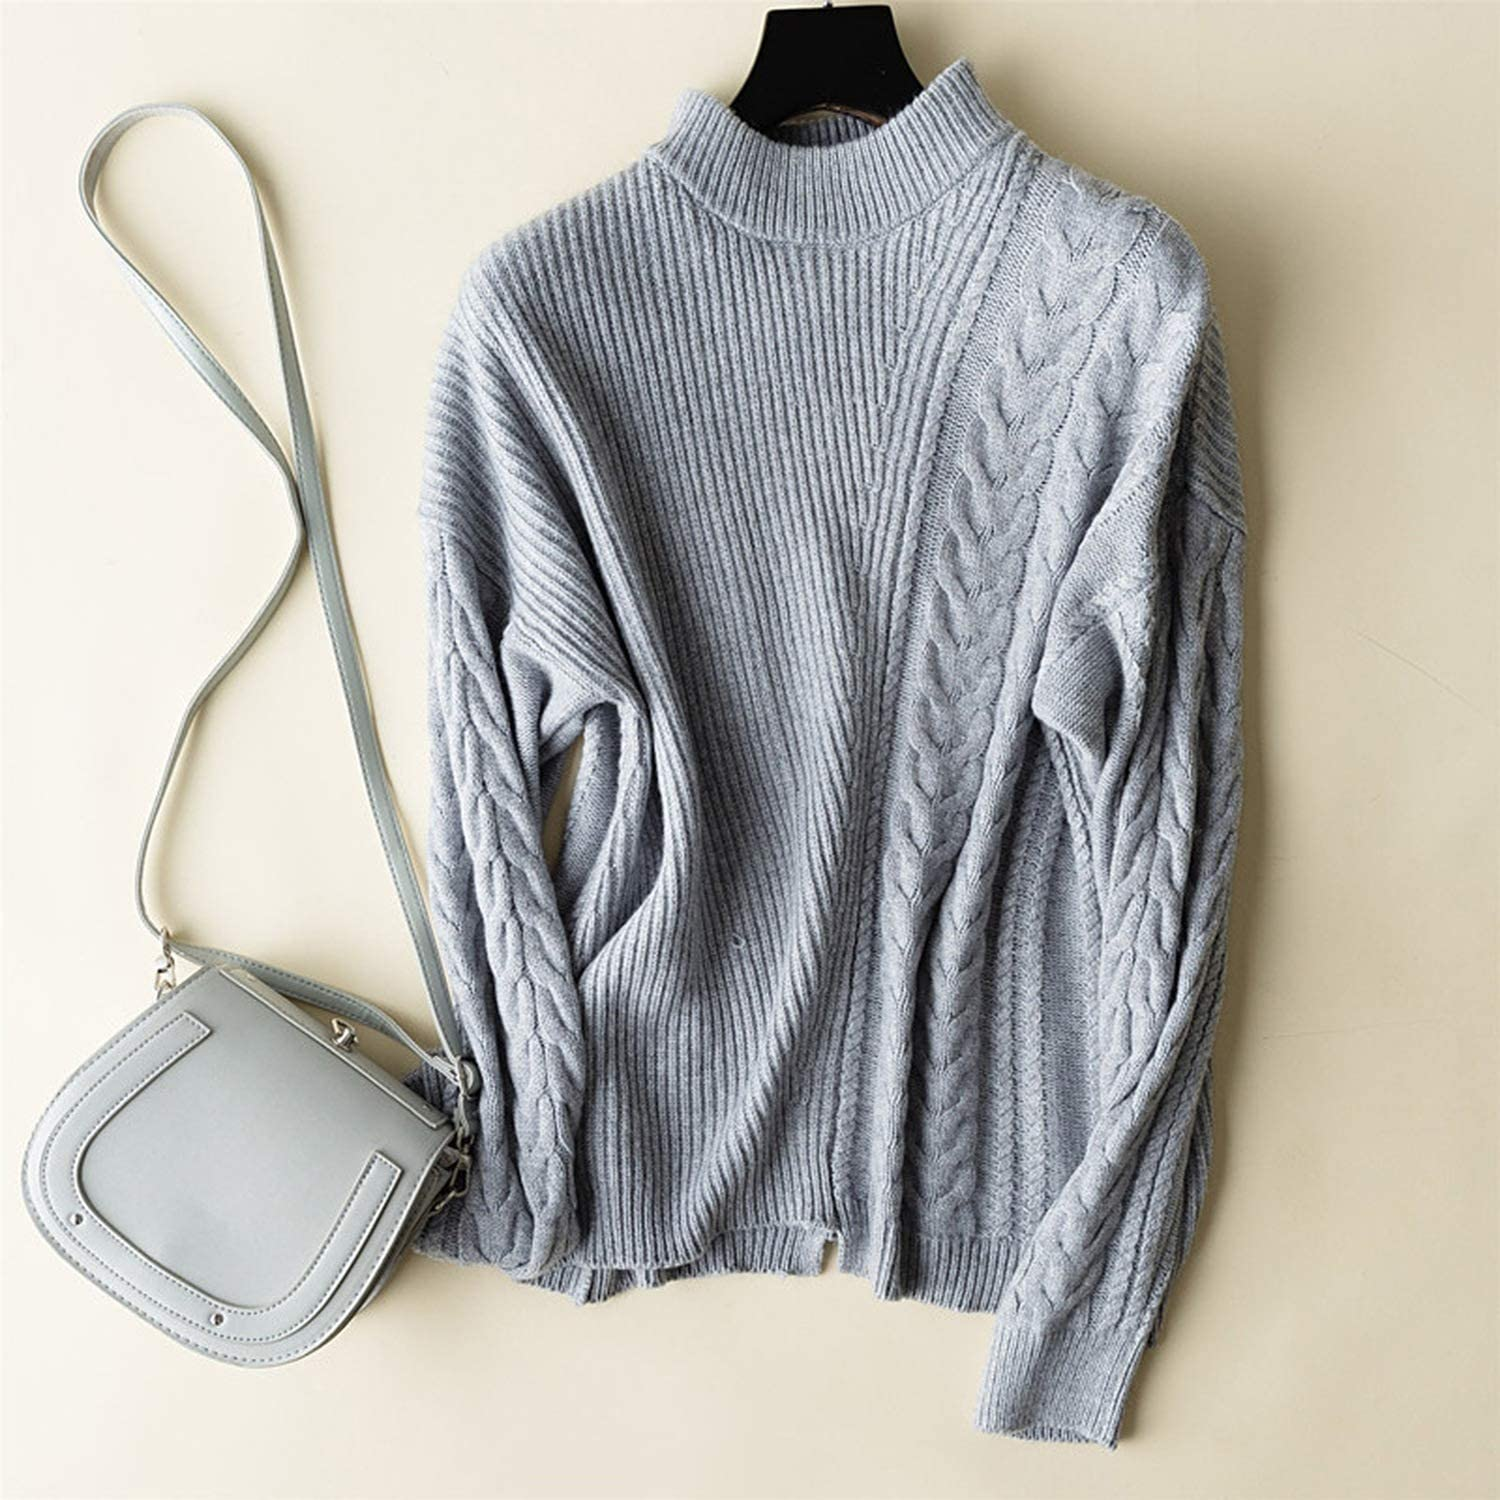 world-palm Double Thickening Loose Turtleneck Cashmere Sweater Female Knit Sweater Cashmere Pullover Sweater,Black,S